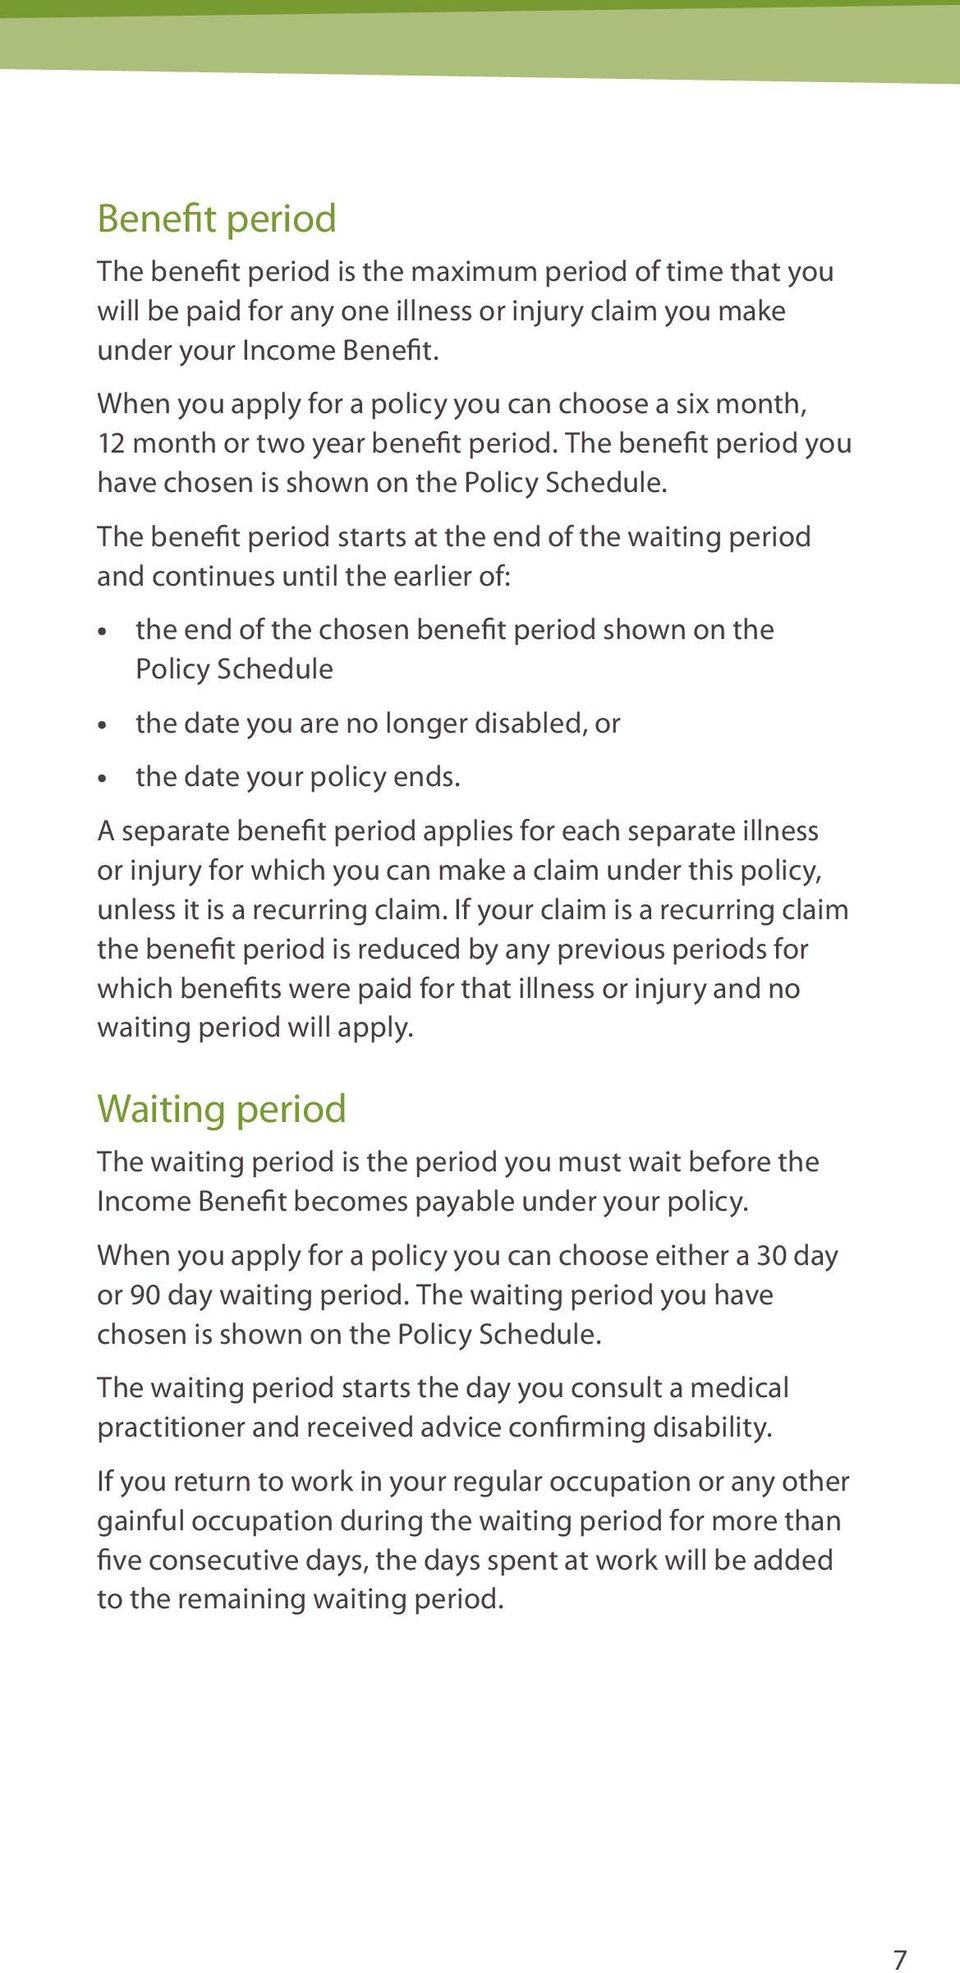 The benefit period starts at the end of the waiting period and continues until the earlier of: the end of the chosen benefit period shown on the Policy Schedule the date you are no longer disabled,